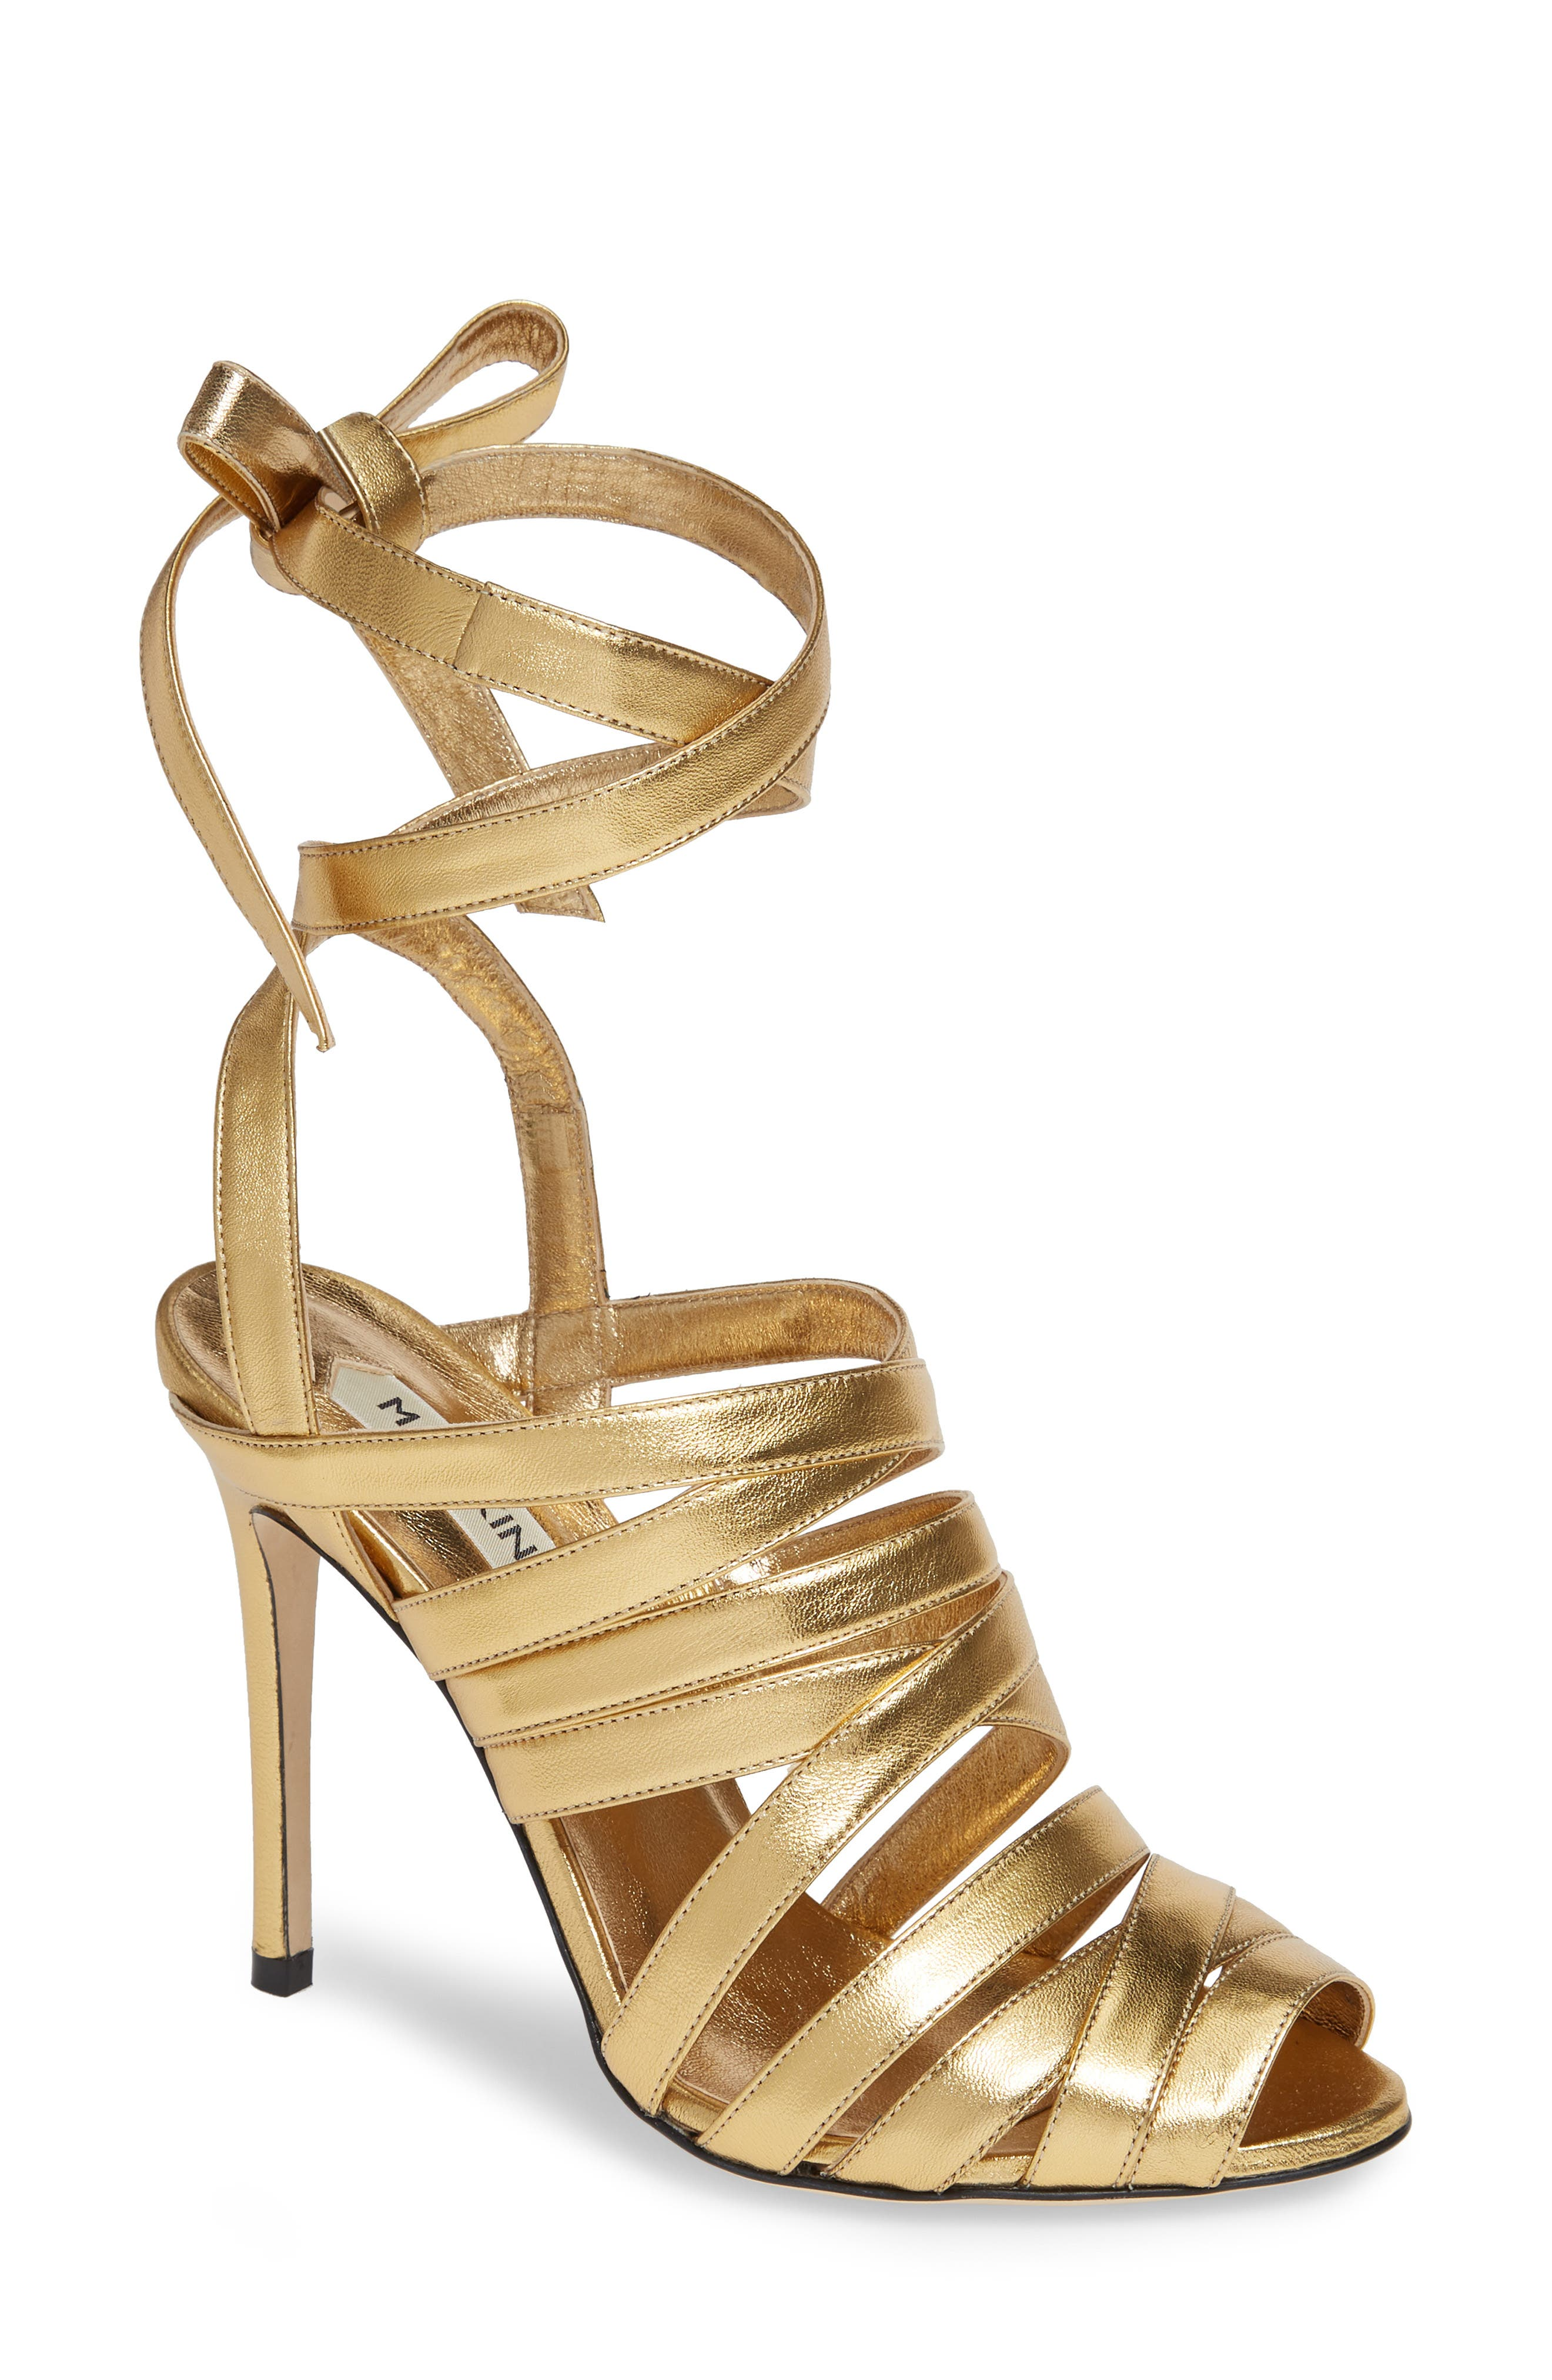 Nadege Strappy Pump,                         Main,                         color, GOLD LEATHER